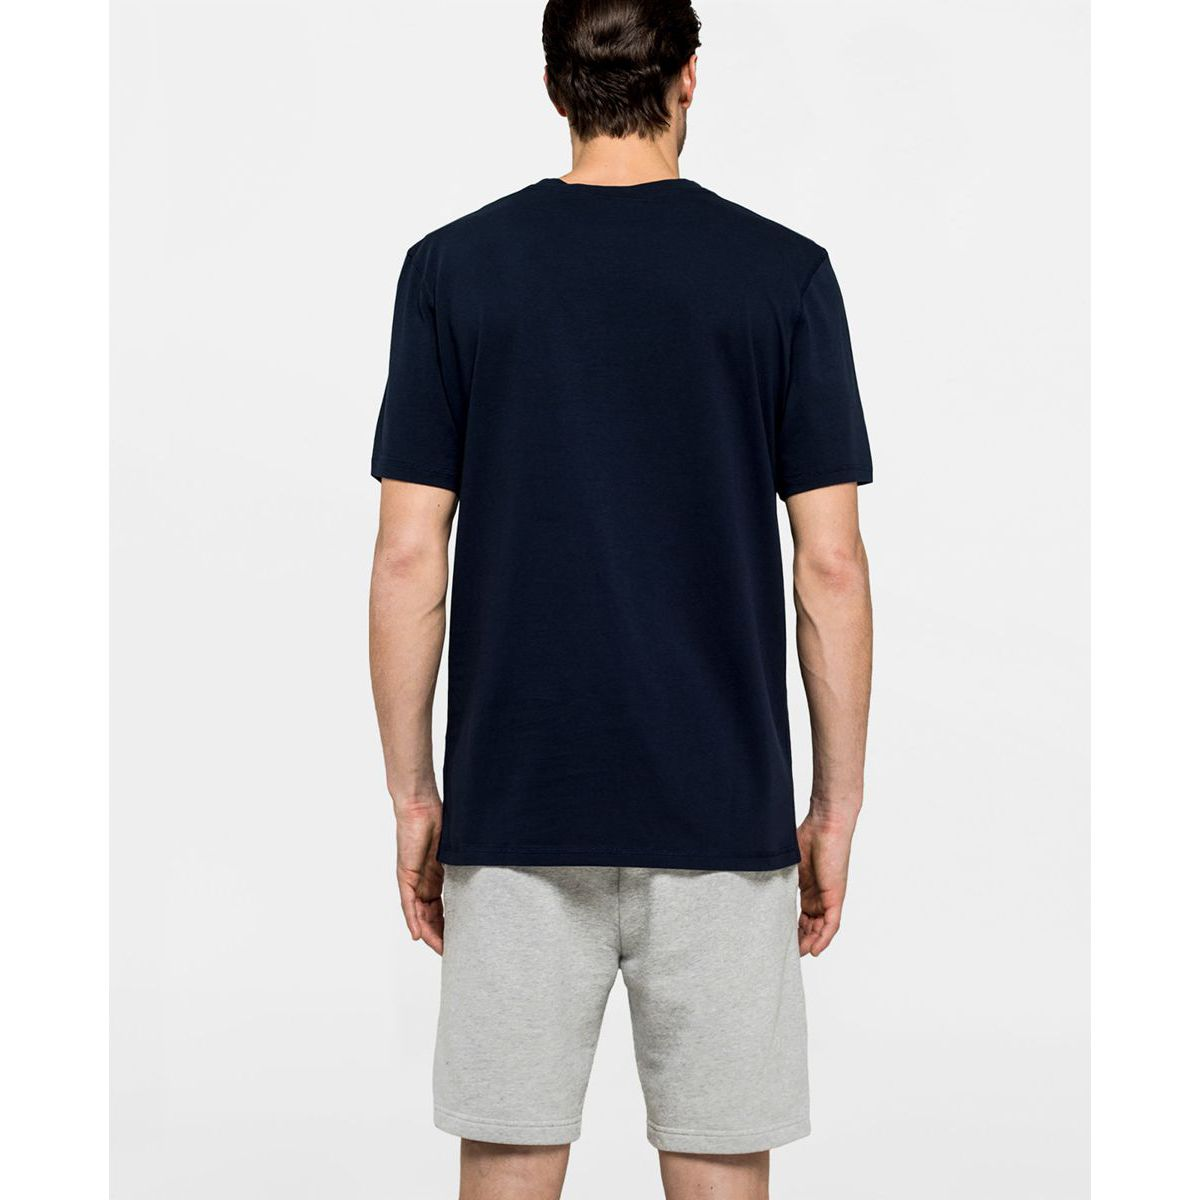 T-shirt Navy Sundek